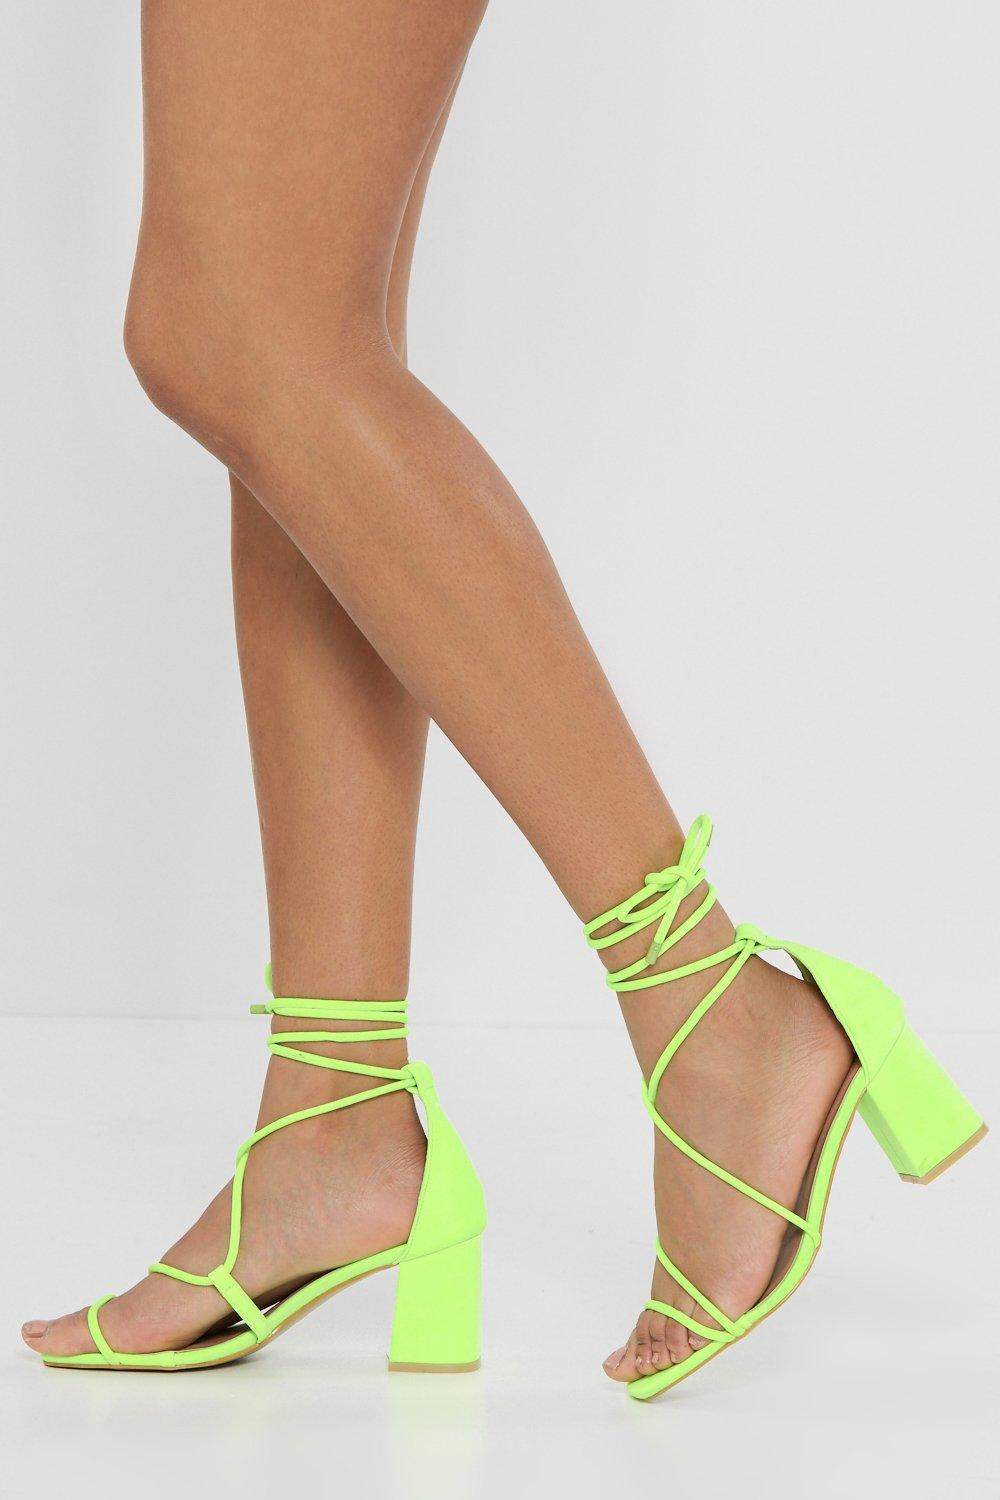 55a56f3adea Strapped in Wrap Heels. Hover to zoom